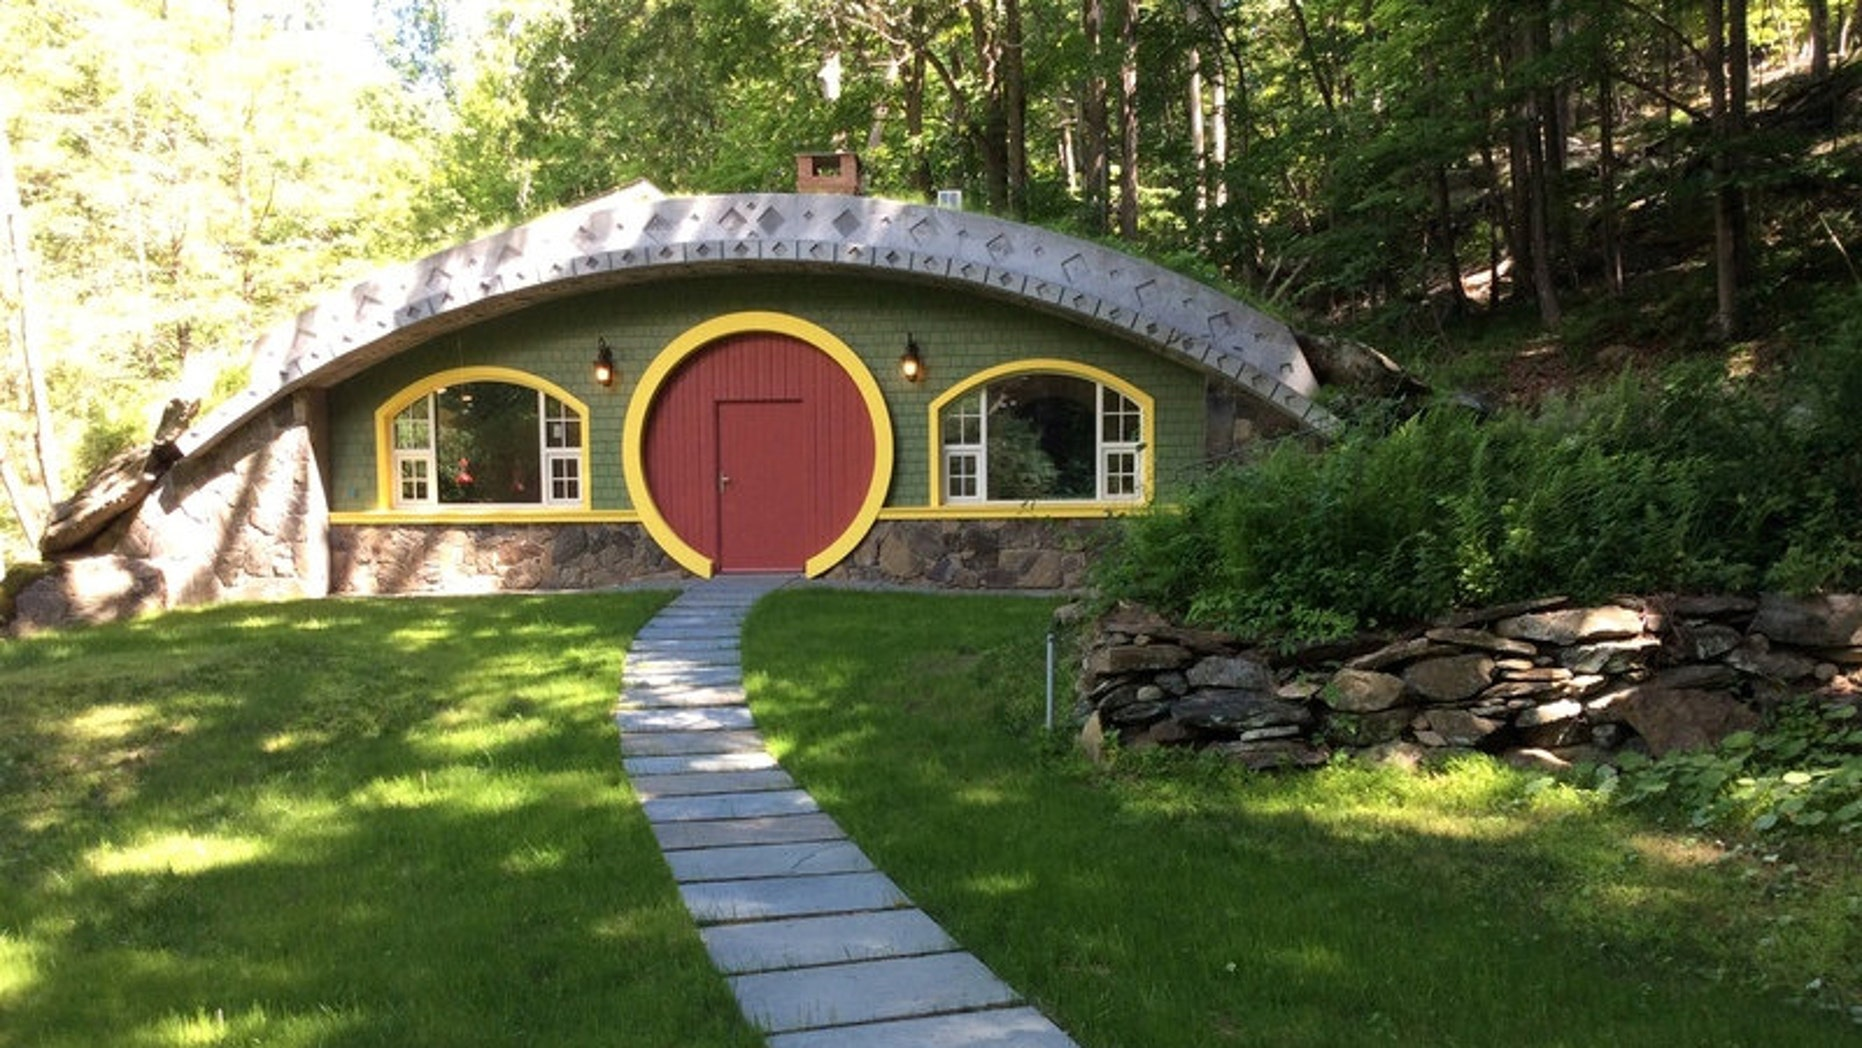 The home is currently on the market for $795,000.